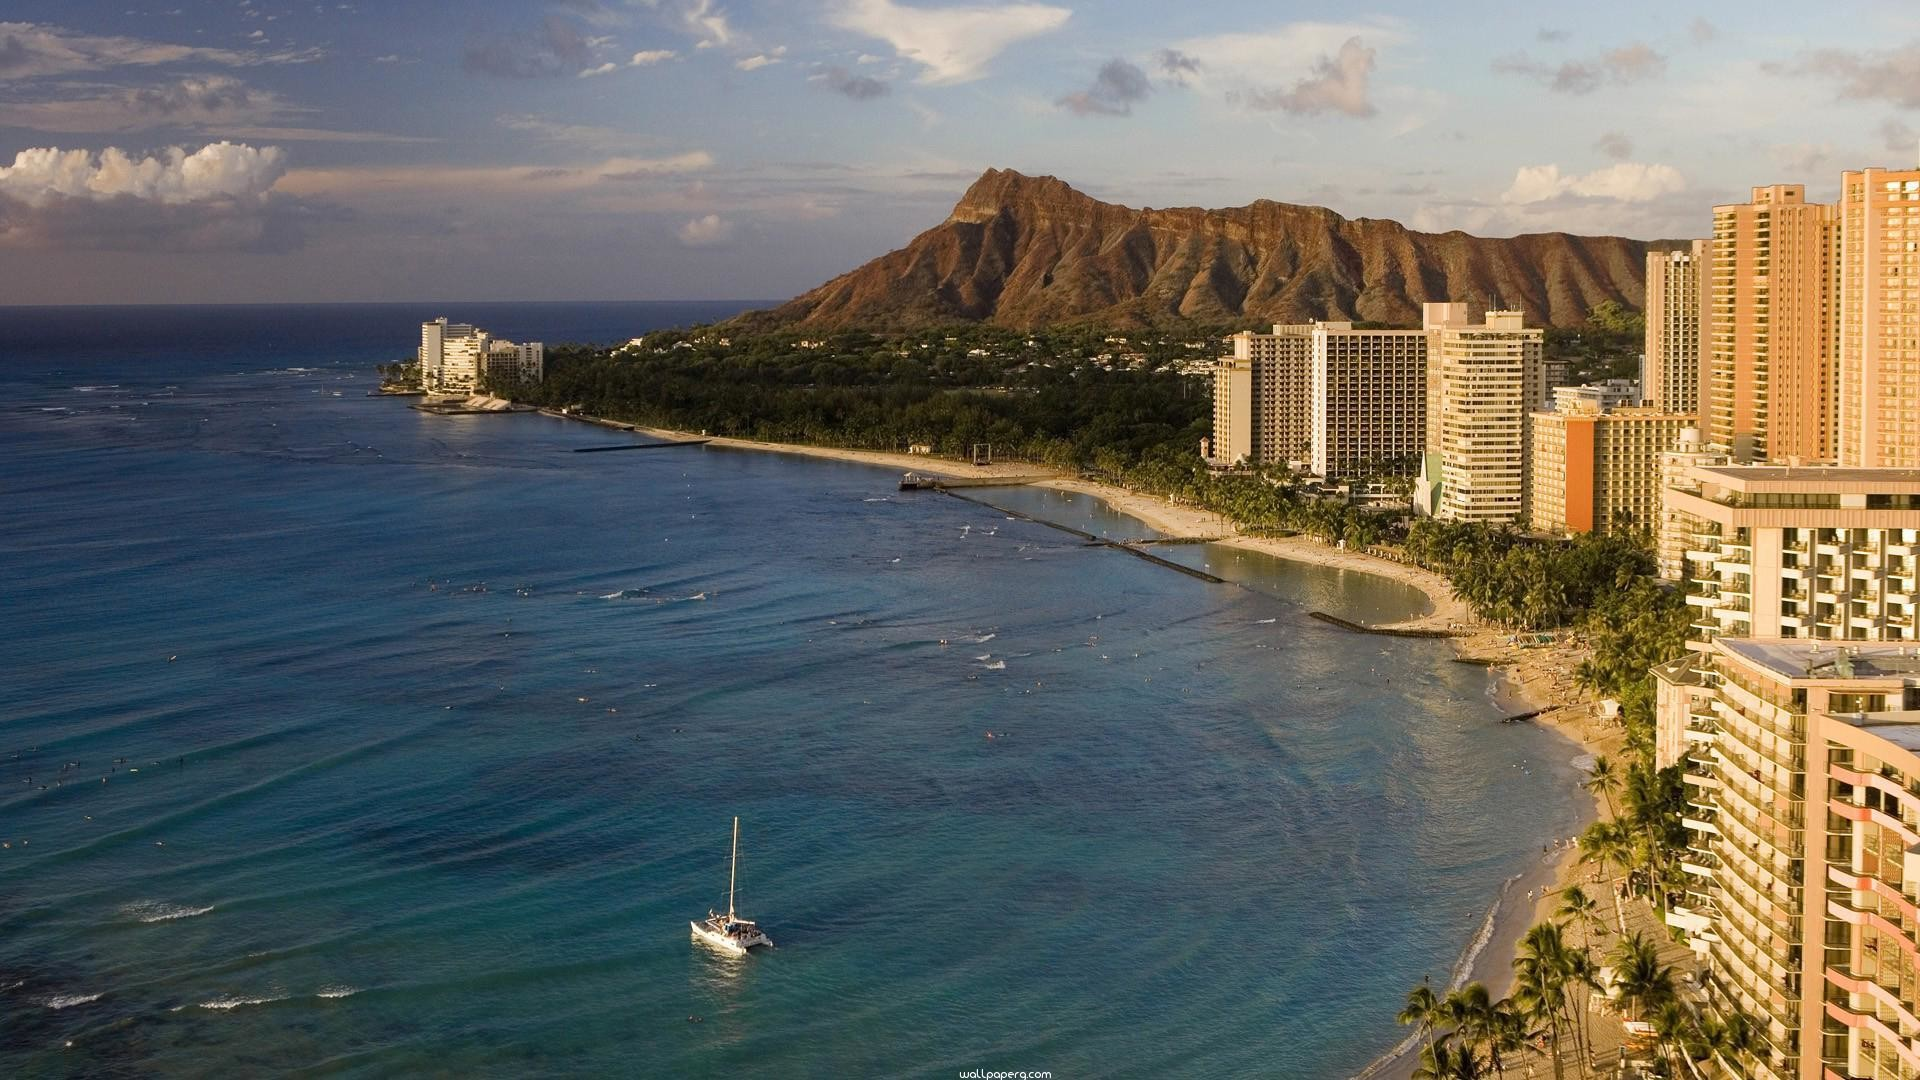 """Res: 1920x1080, Download """"Waikiki beach honolulu oahu hd wallpaper for laptop"""" wallpaper  for mobile cell phone."""